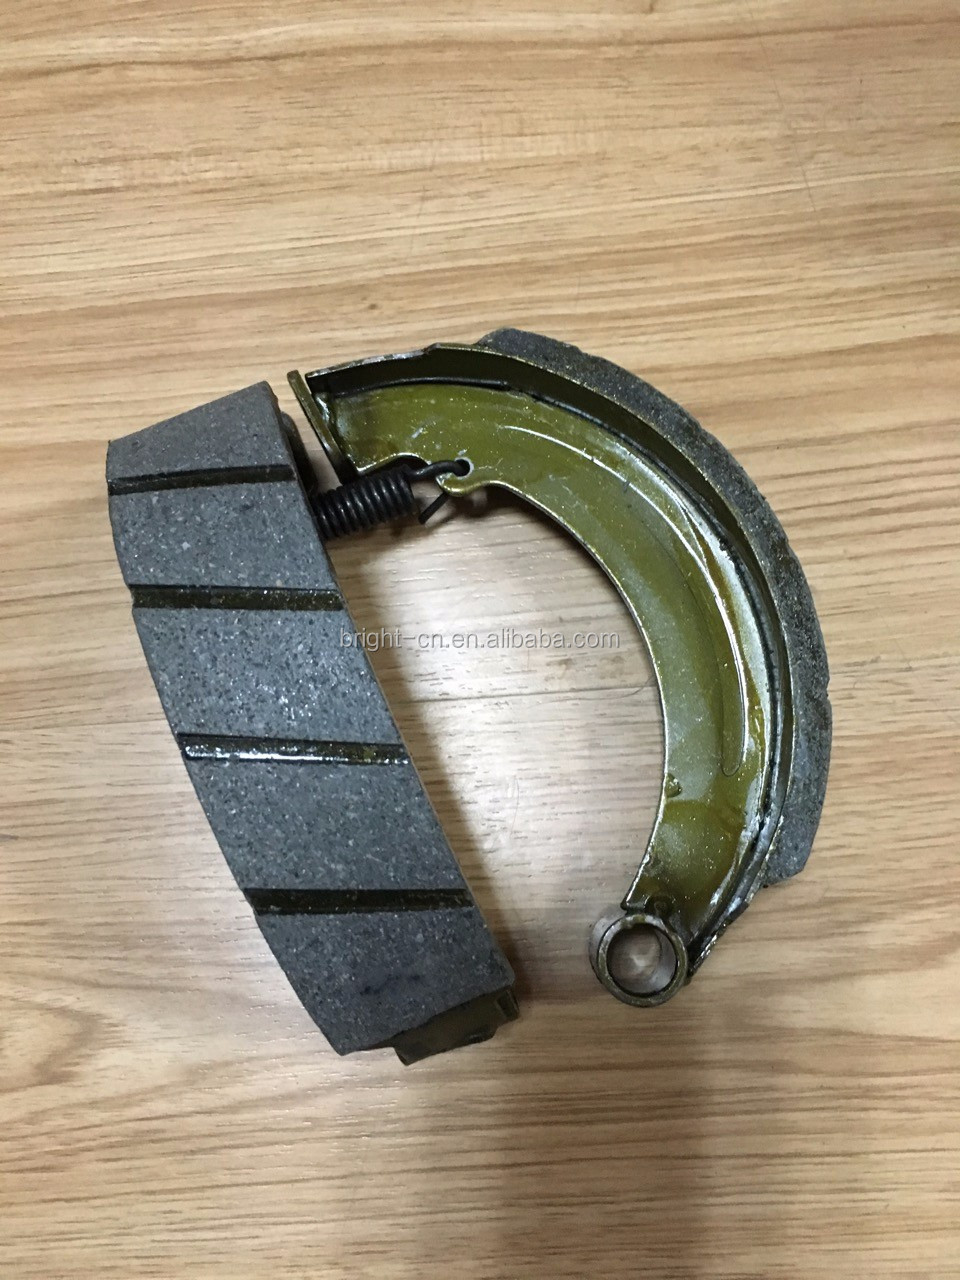 hign quality/good quality/normal quality borac160 & h-power180 brake shoe for tricycle